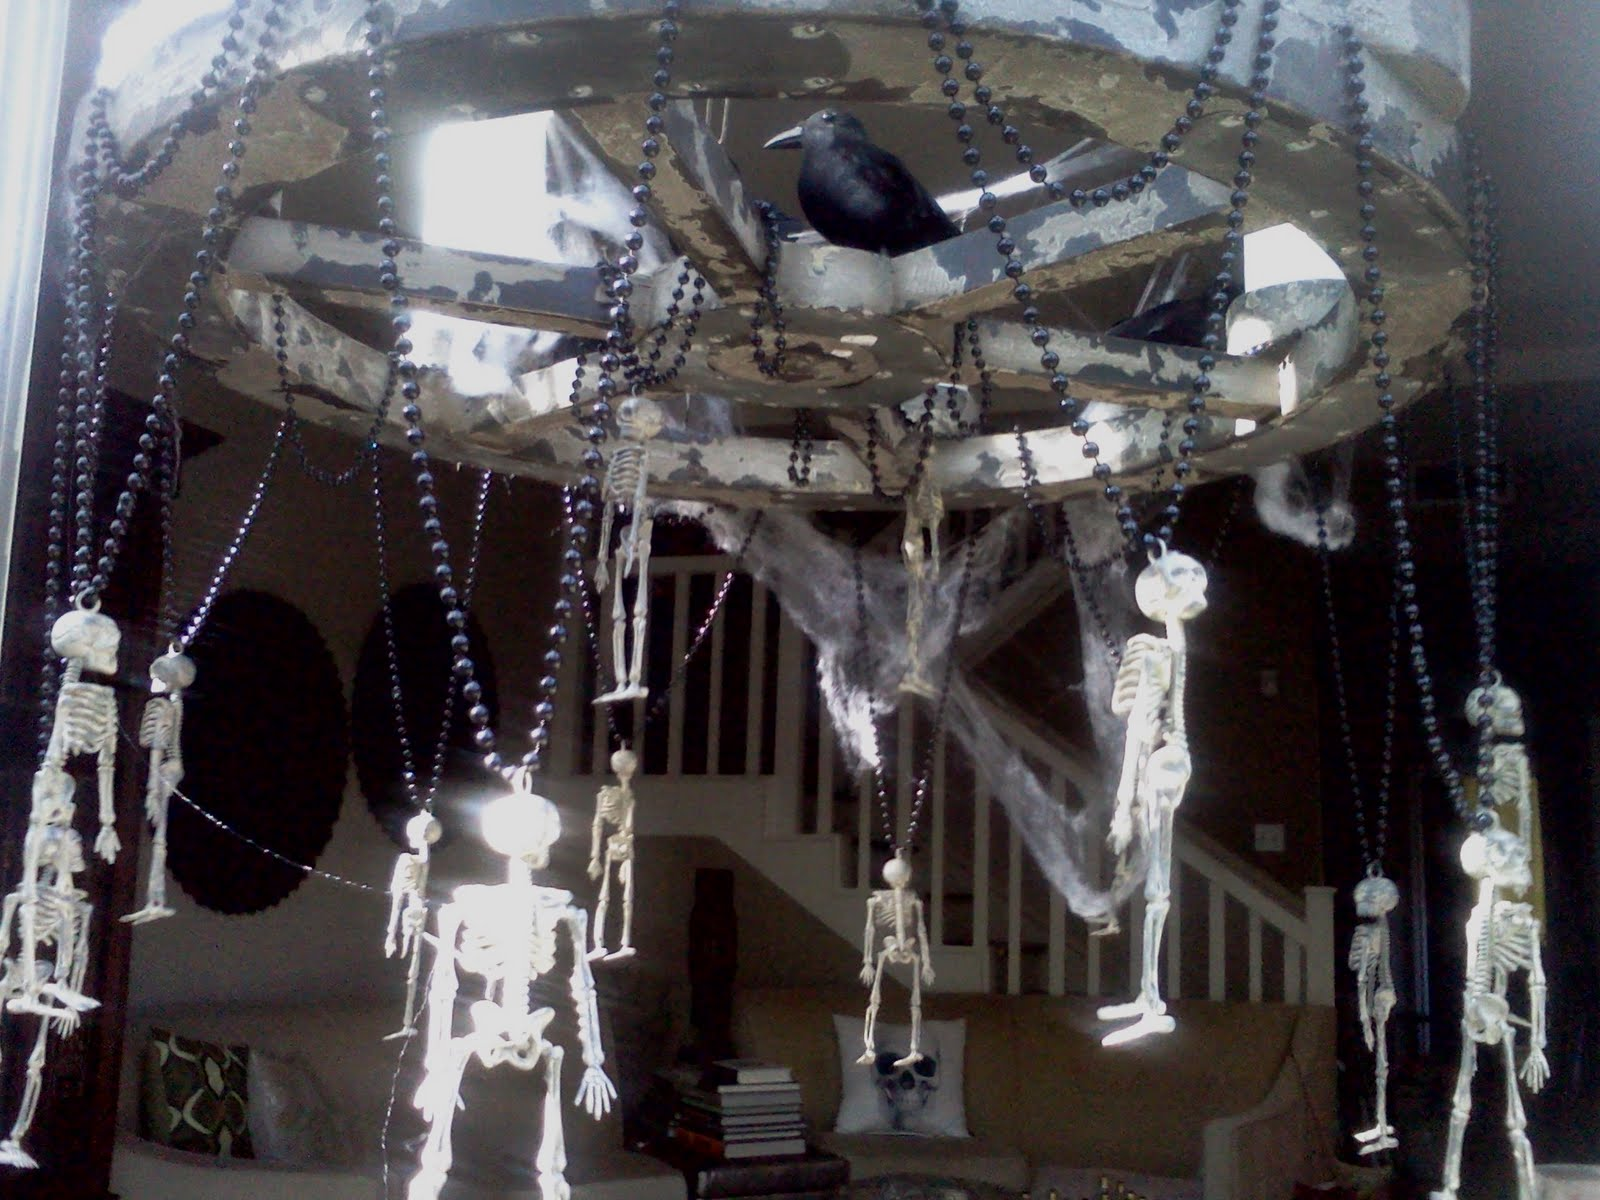 dem bones halloween chandelier use existing chandelier or make styrofoam wood toy wagon wheel etc hang dollar store skeleton necklaces from